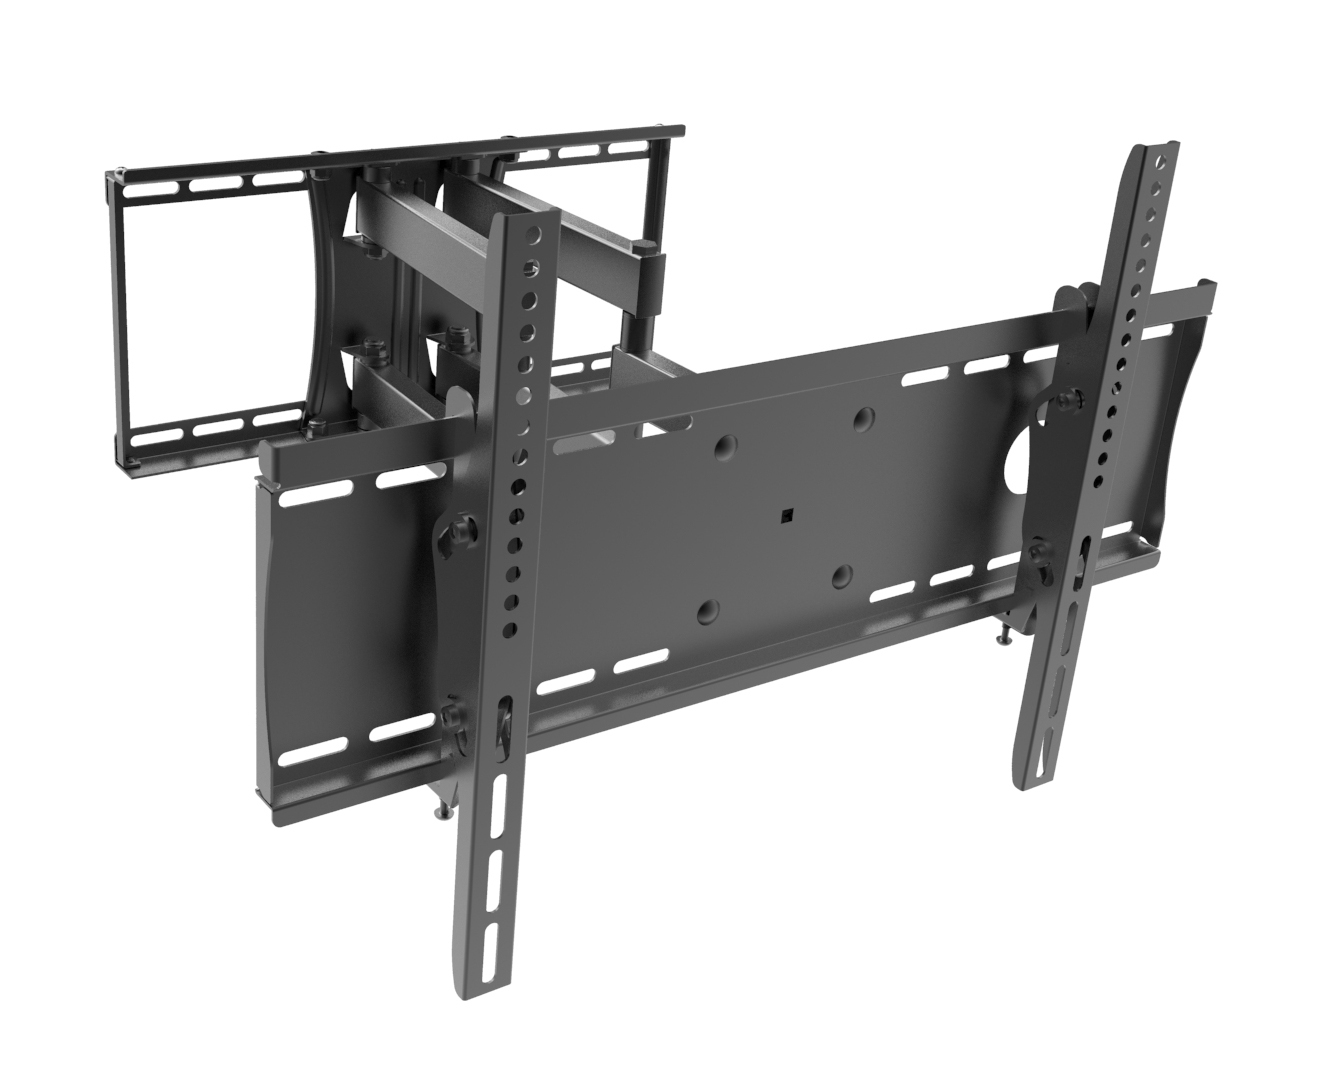 Wall mount for digital display